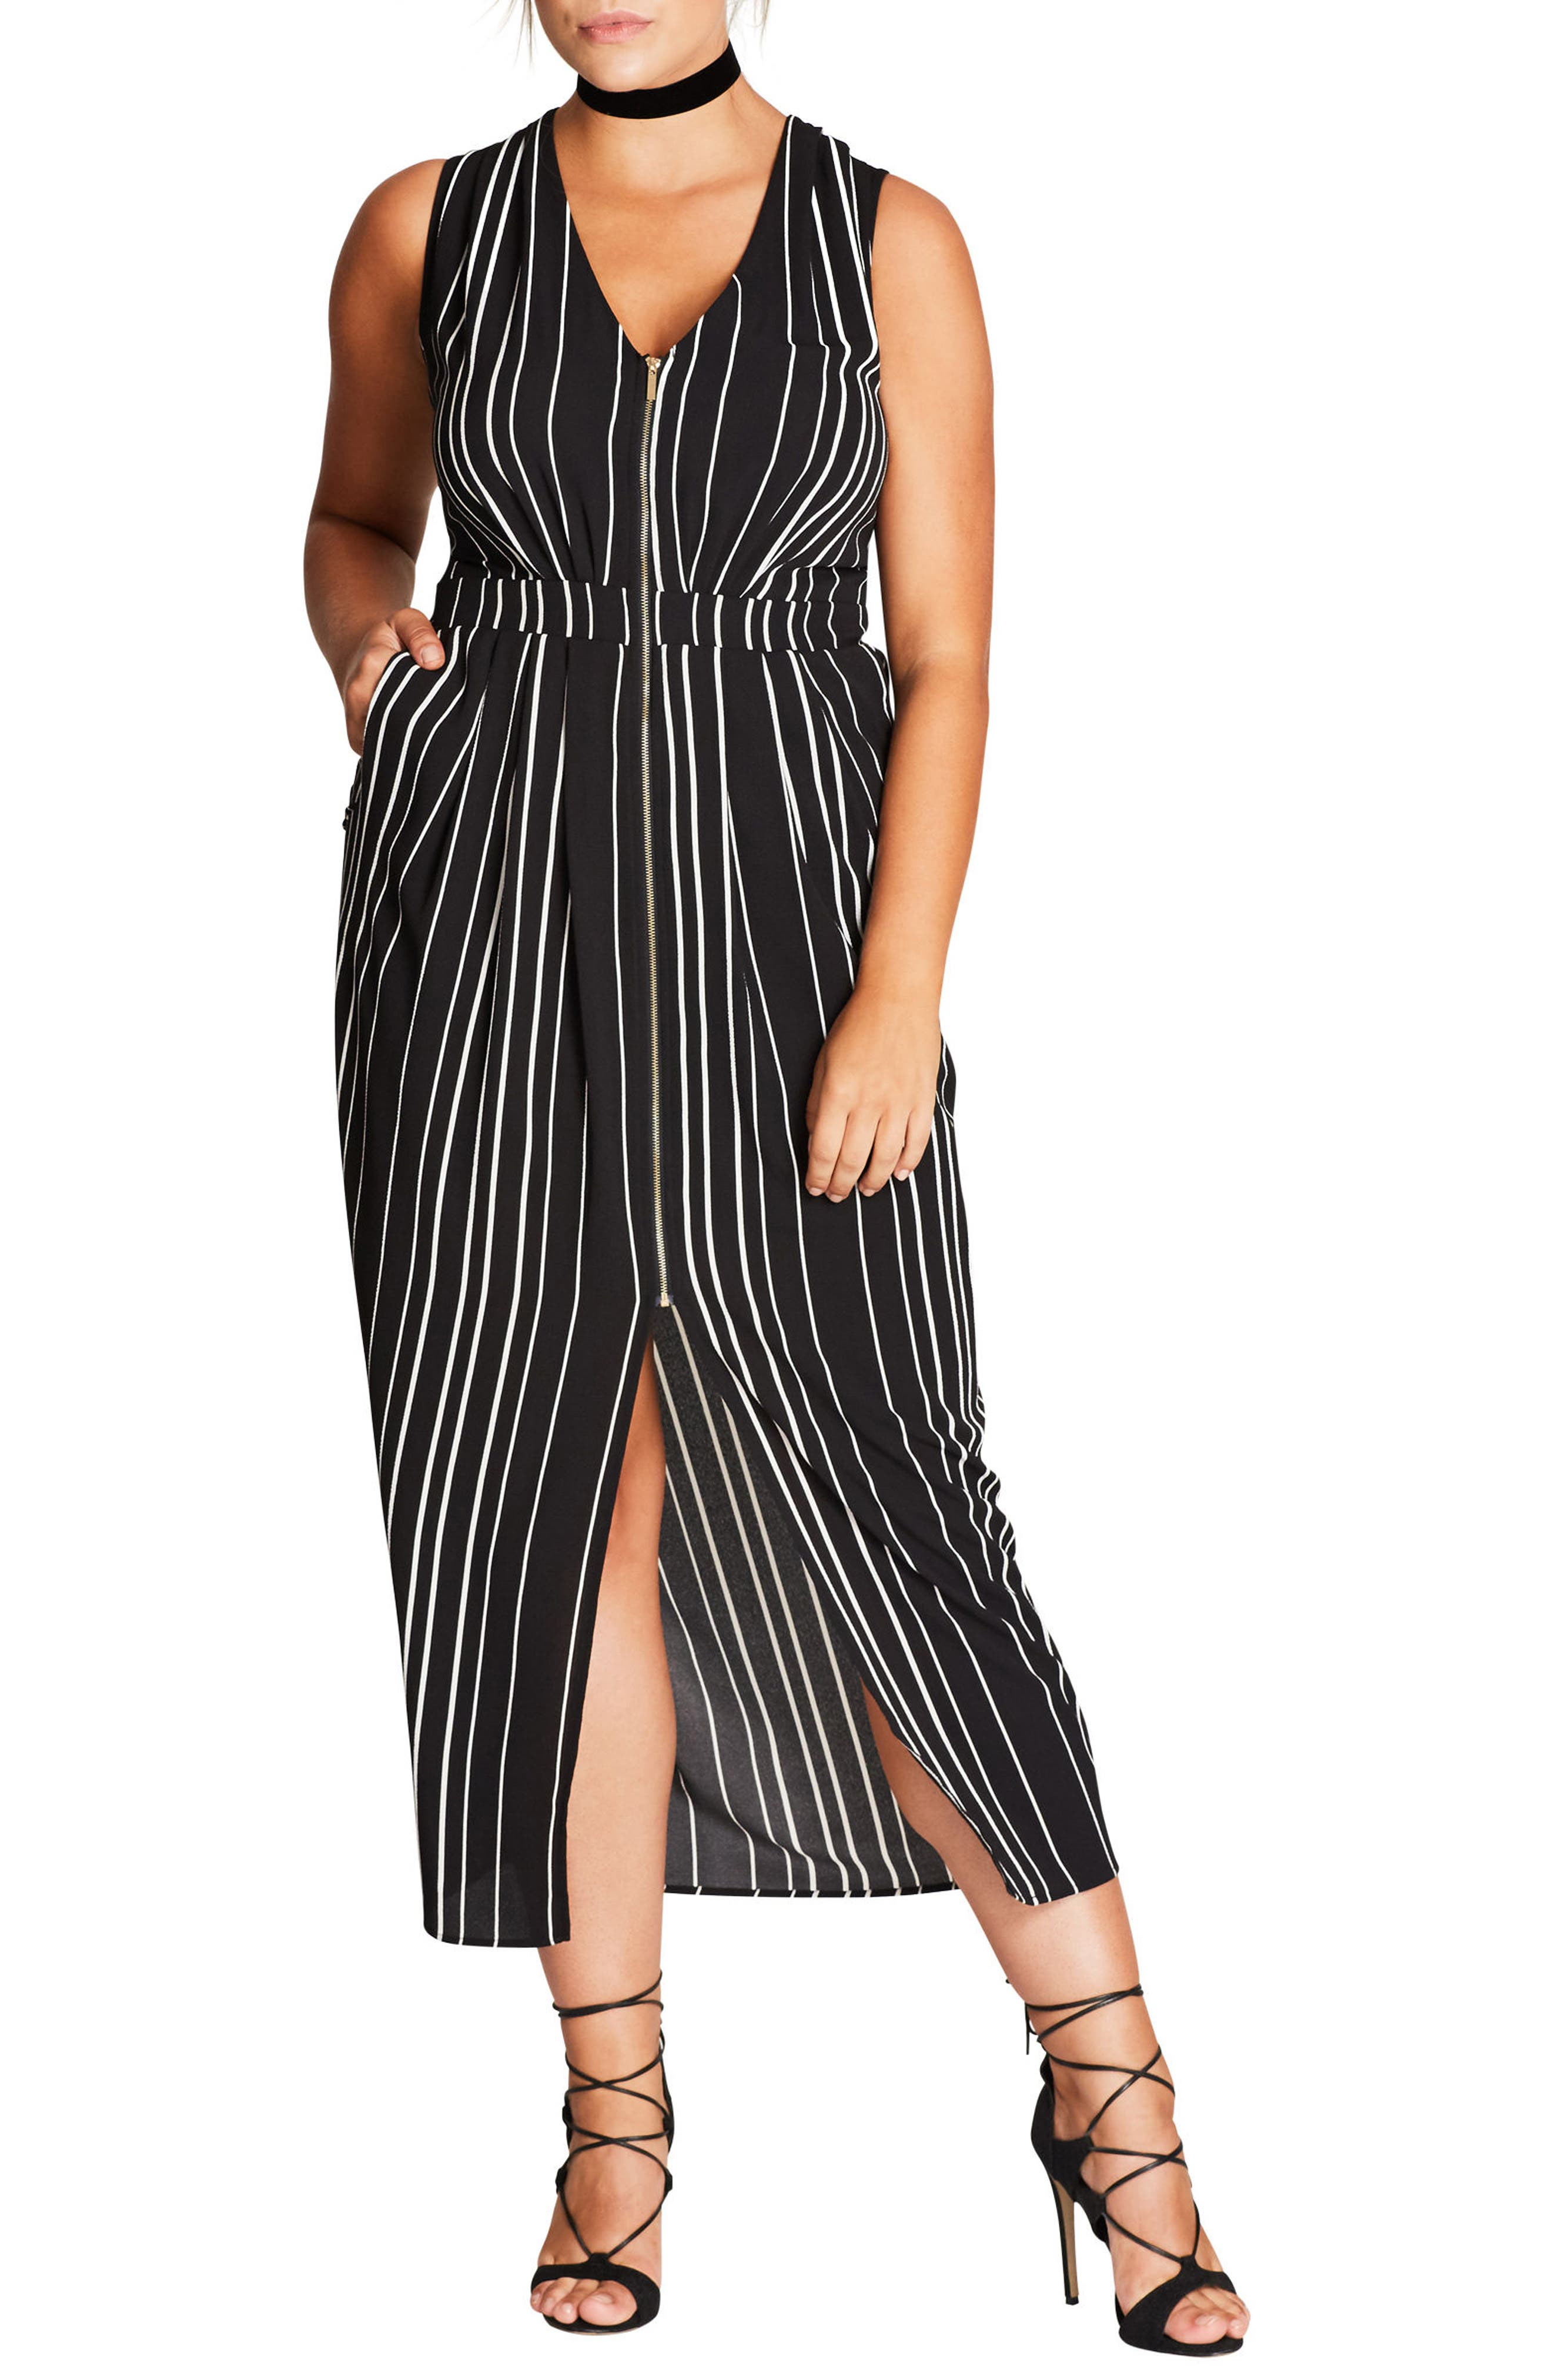 Alternate Image 1 Selected - City Chic Pleat Zip Front Dress (Plus Size)